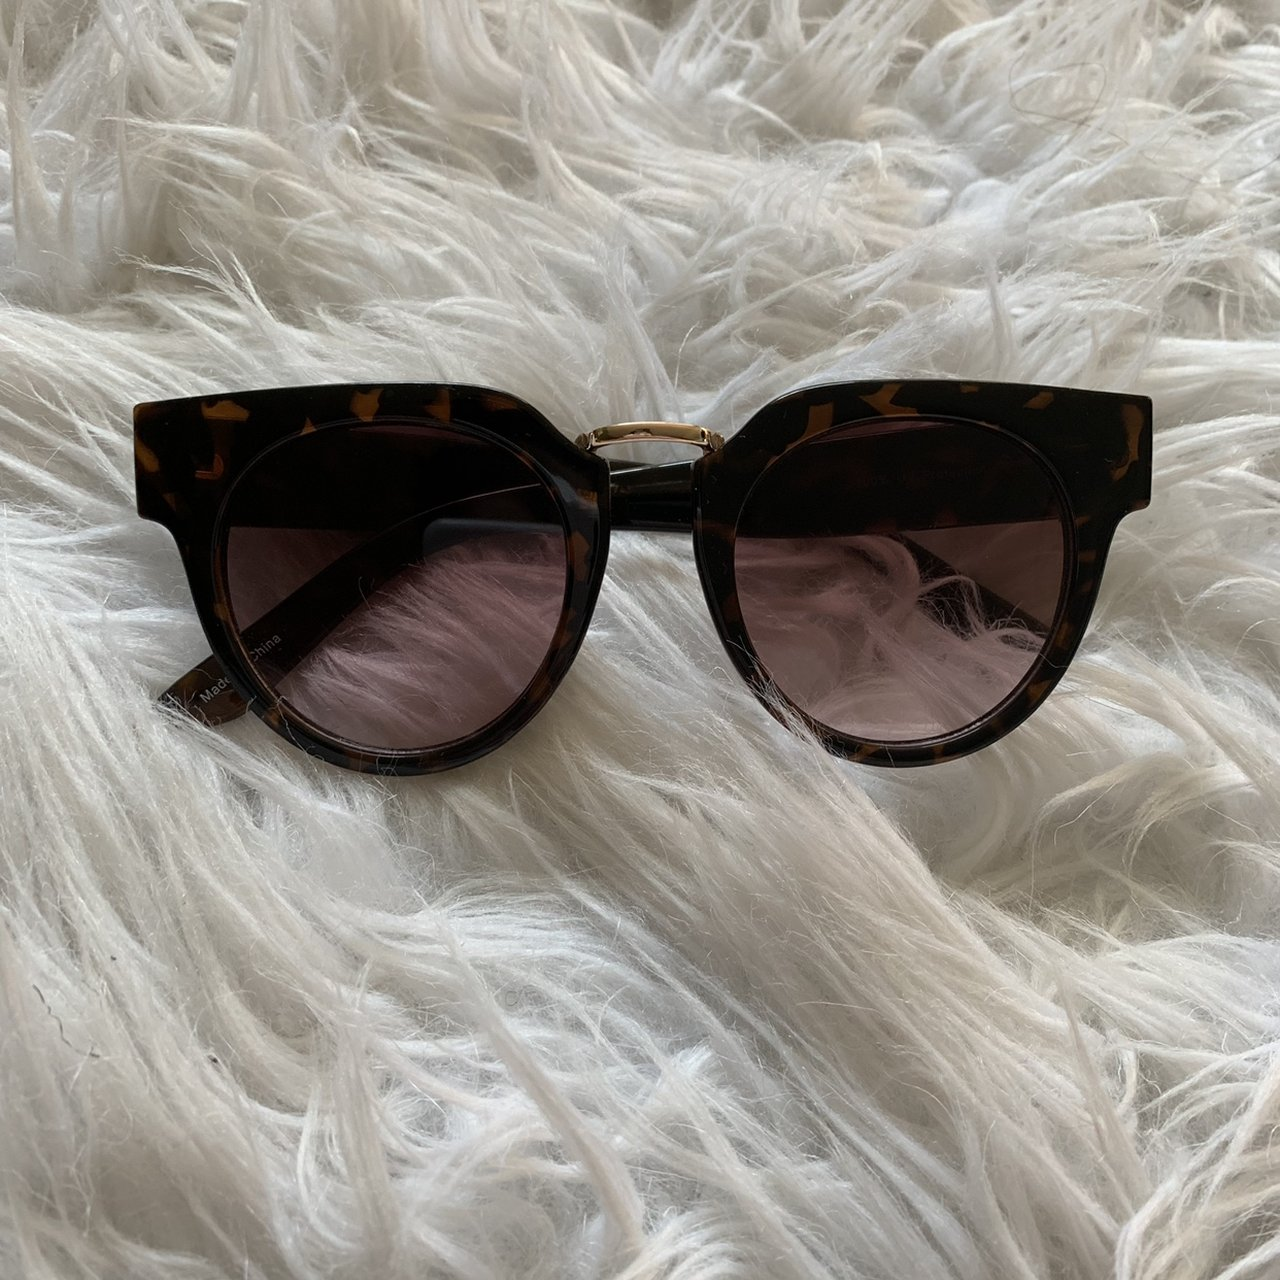 a66bffe1c3bb1 Super cute tortoise shell sunnies from Nordstrom 😎 only a - Depop